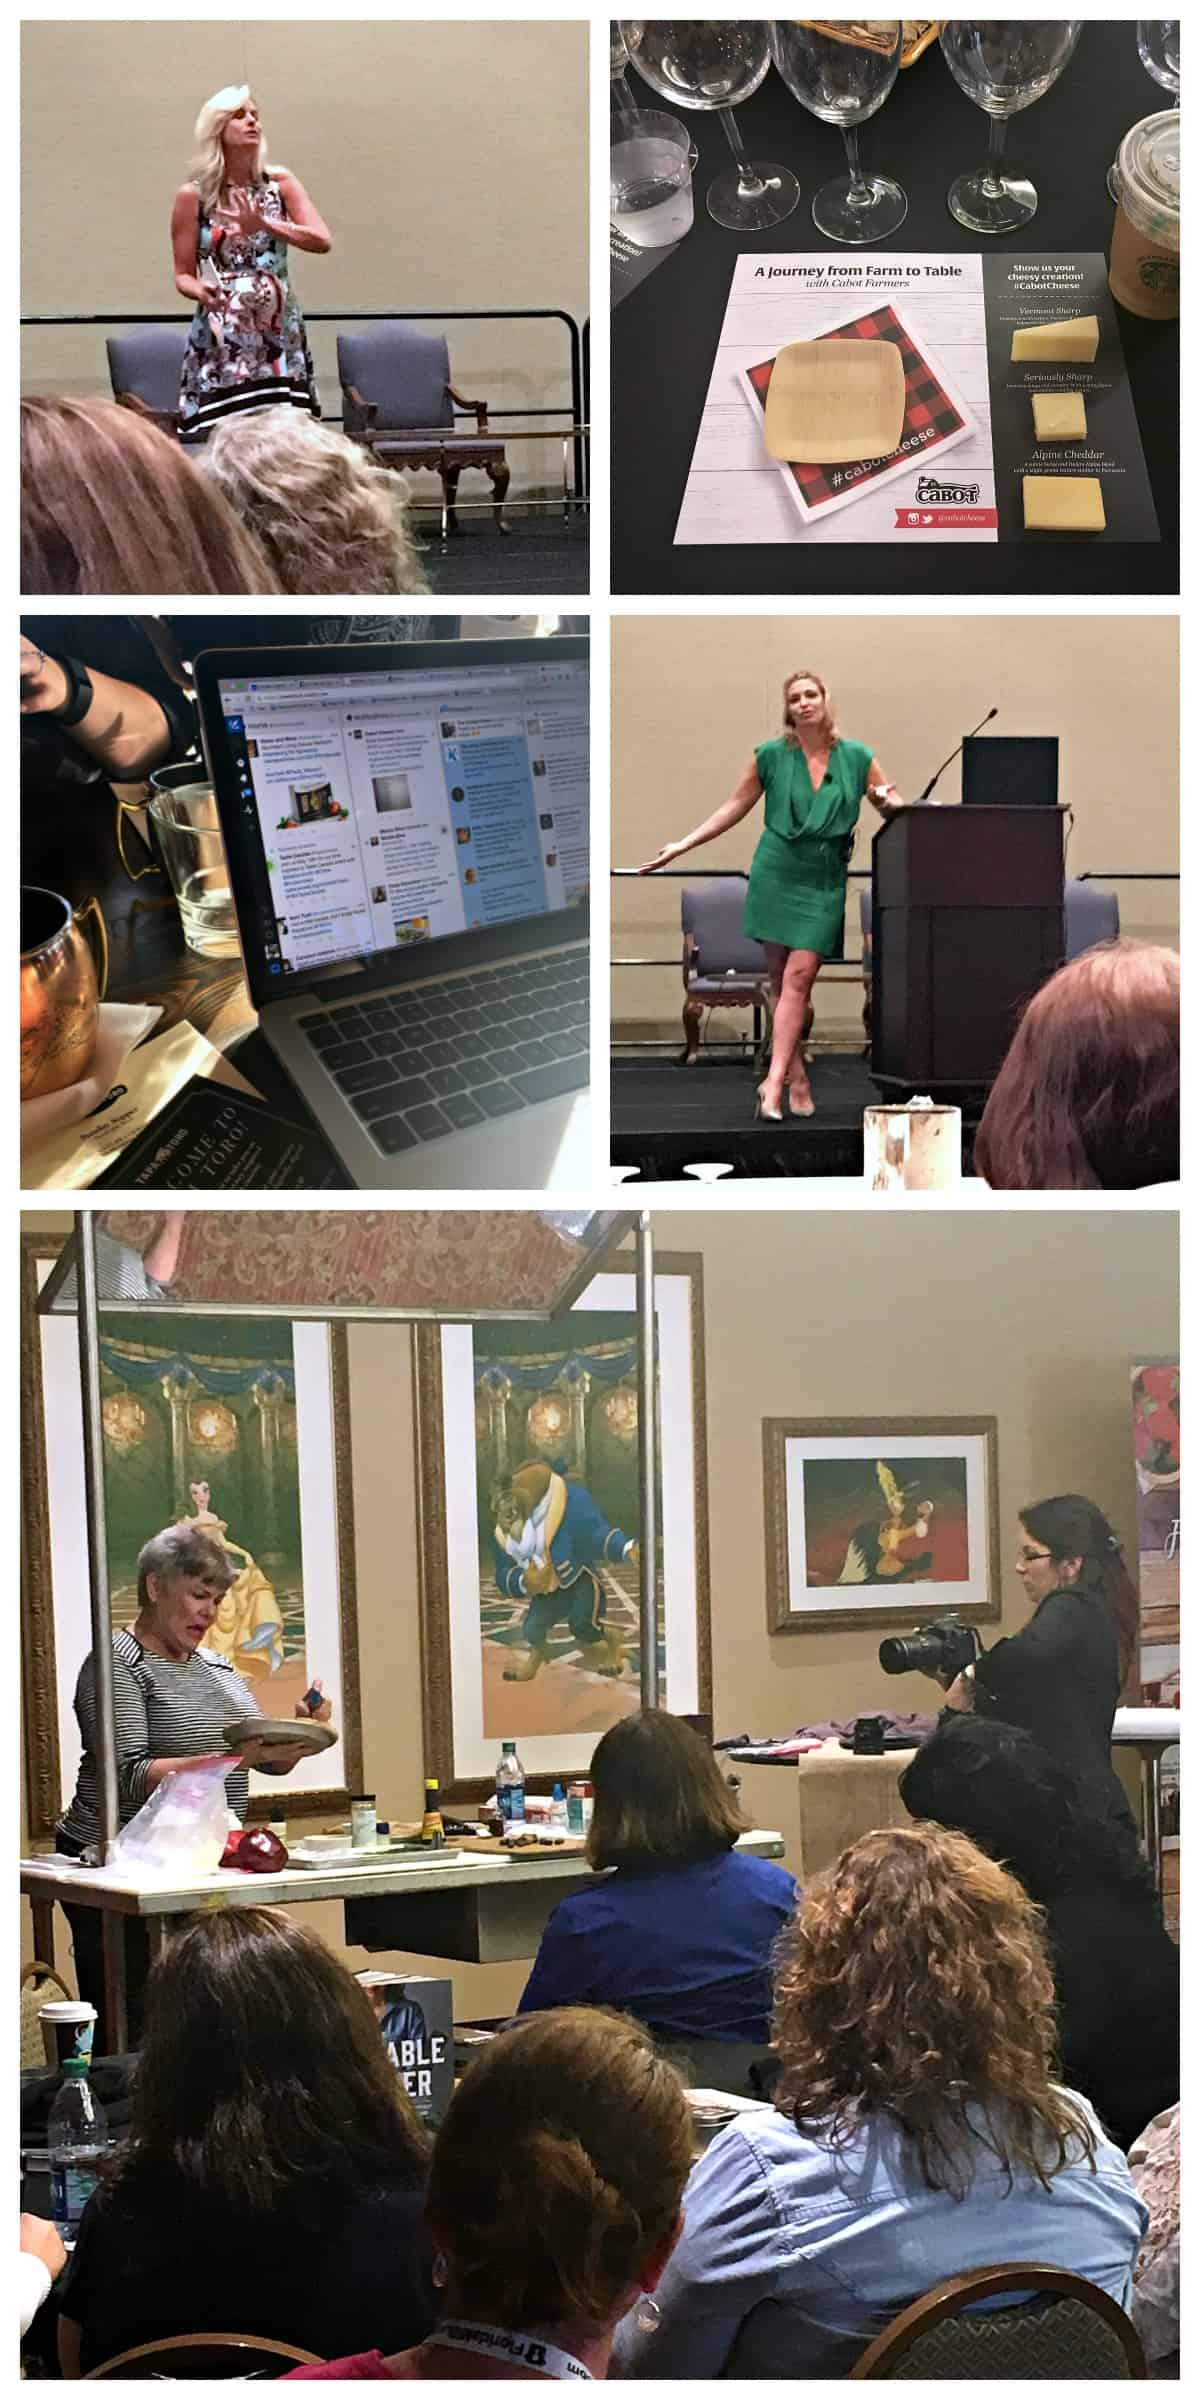 How to Succeed at #FWCon Without Really Trying| Recap - #FWCon Learn